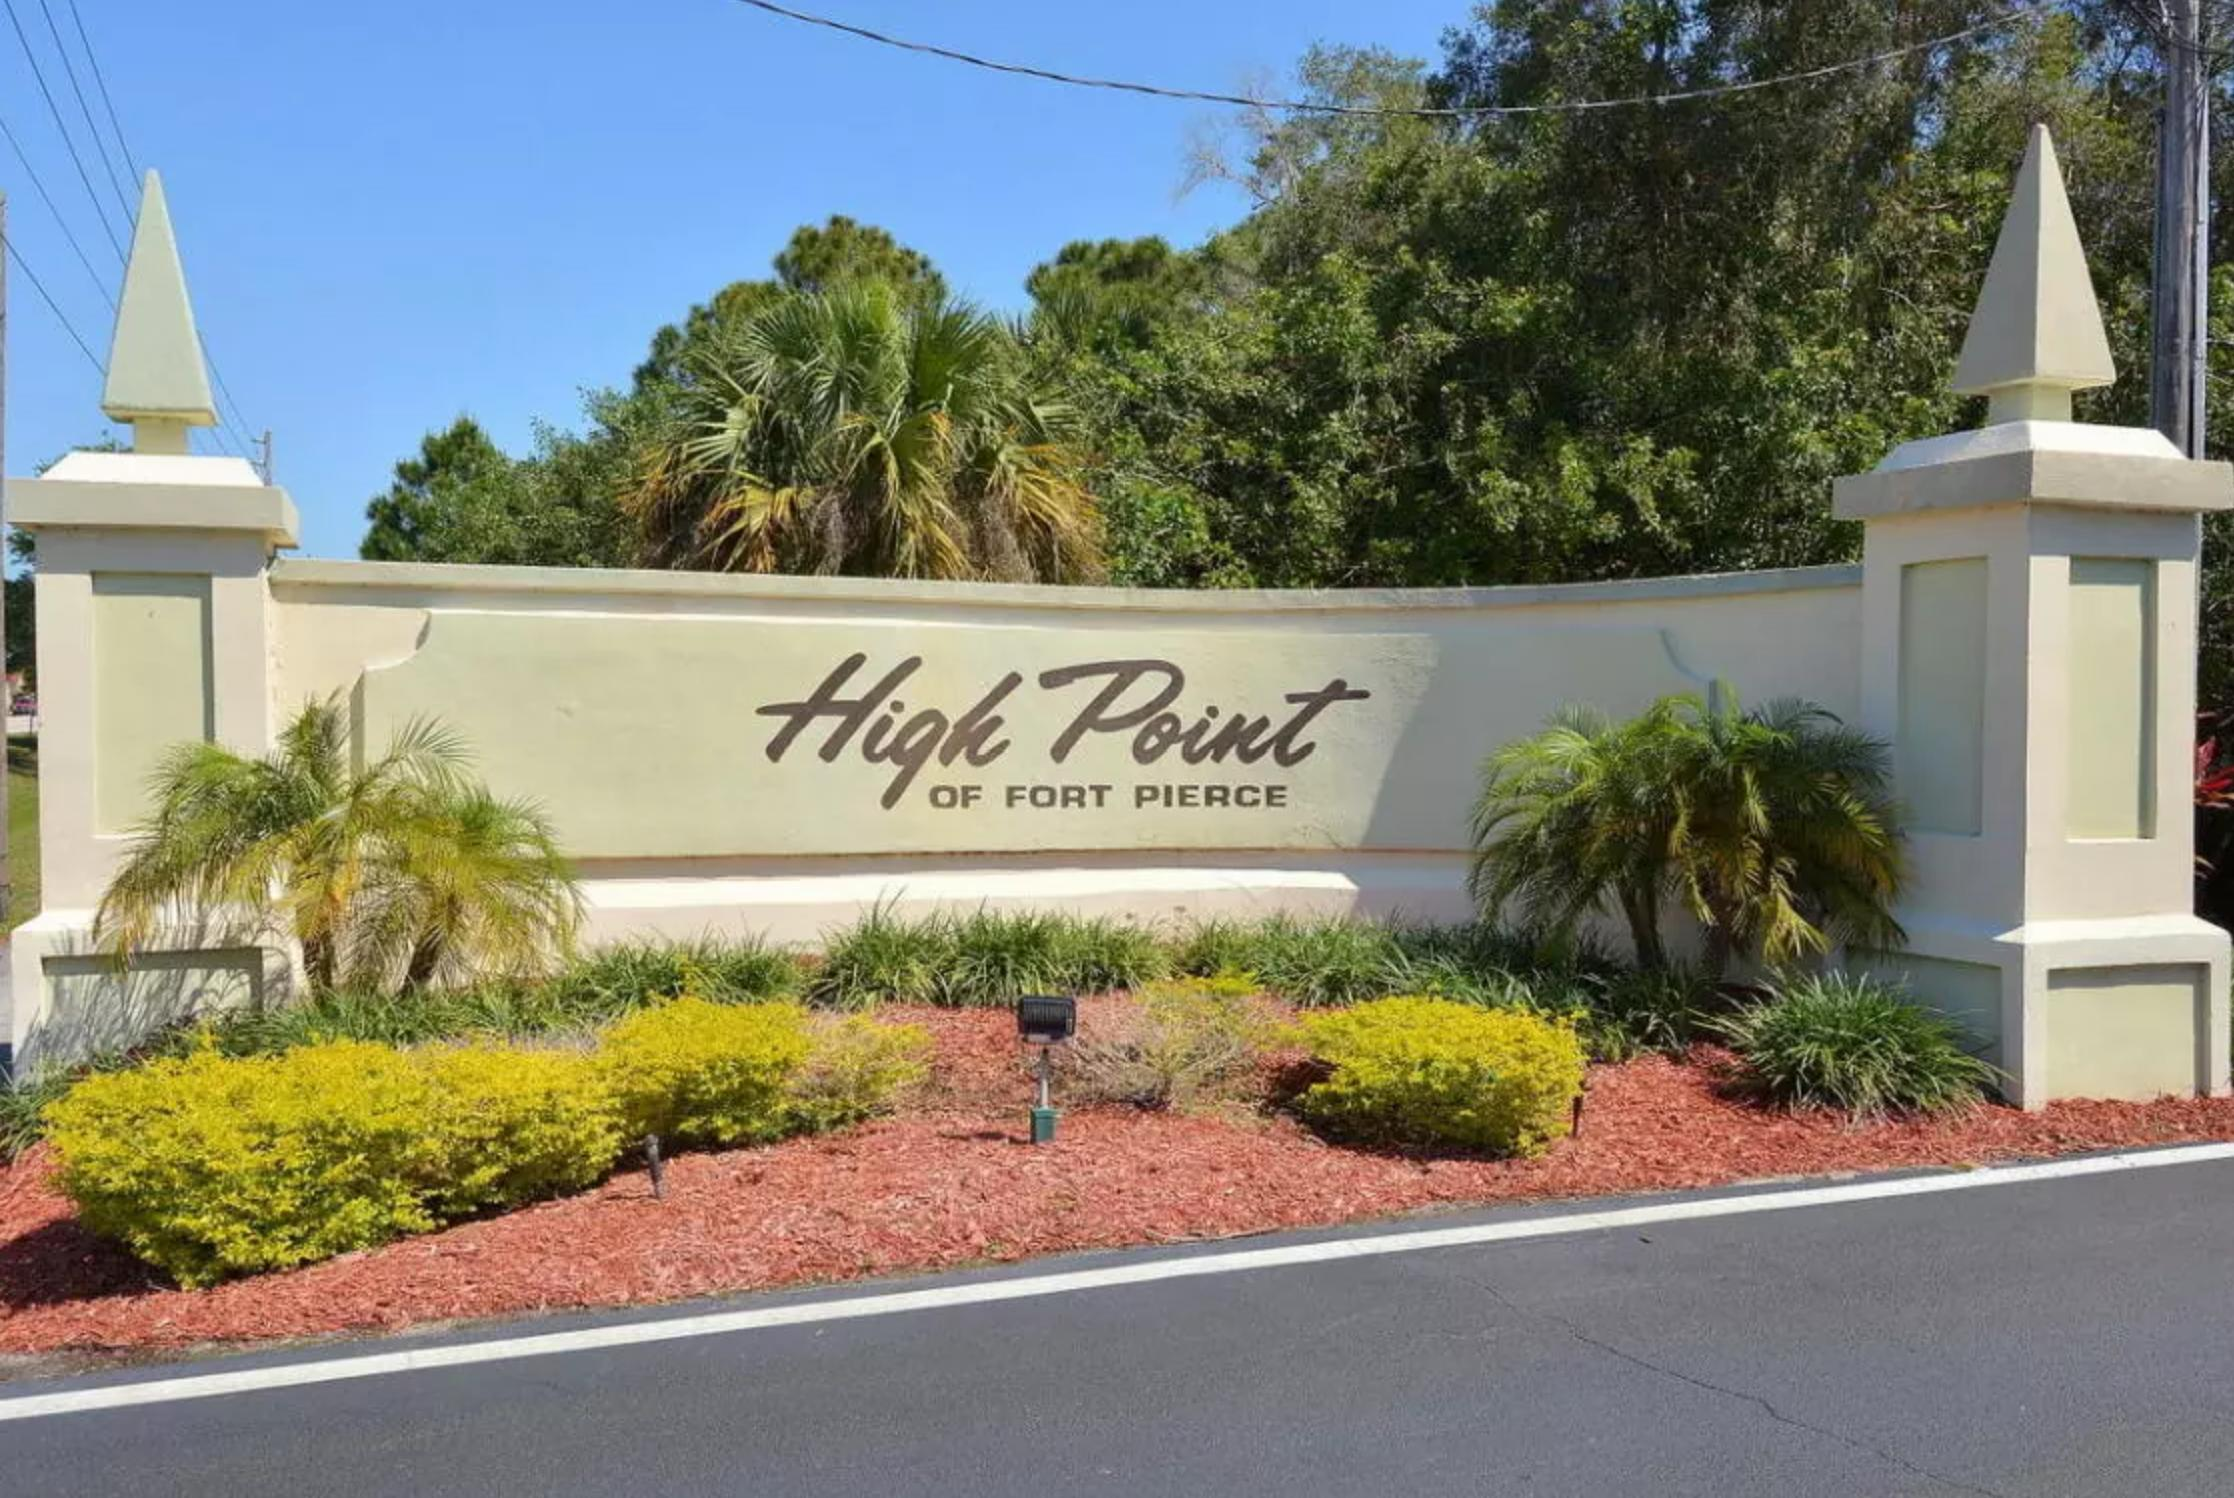 733 High Point - 2 E Boulevard, Fort Pierce, FL 34950